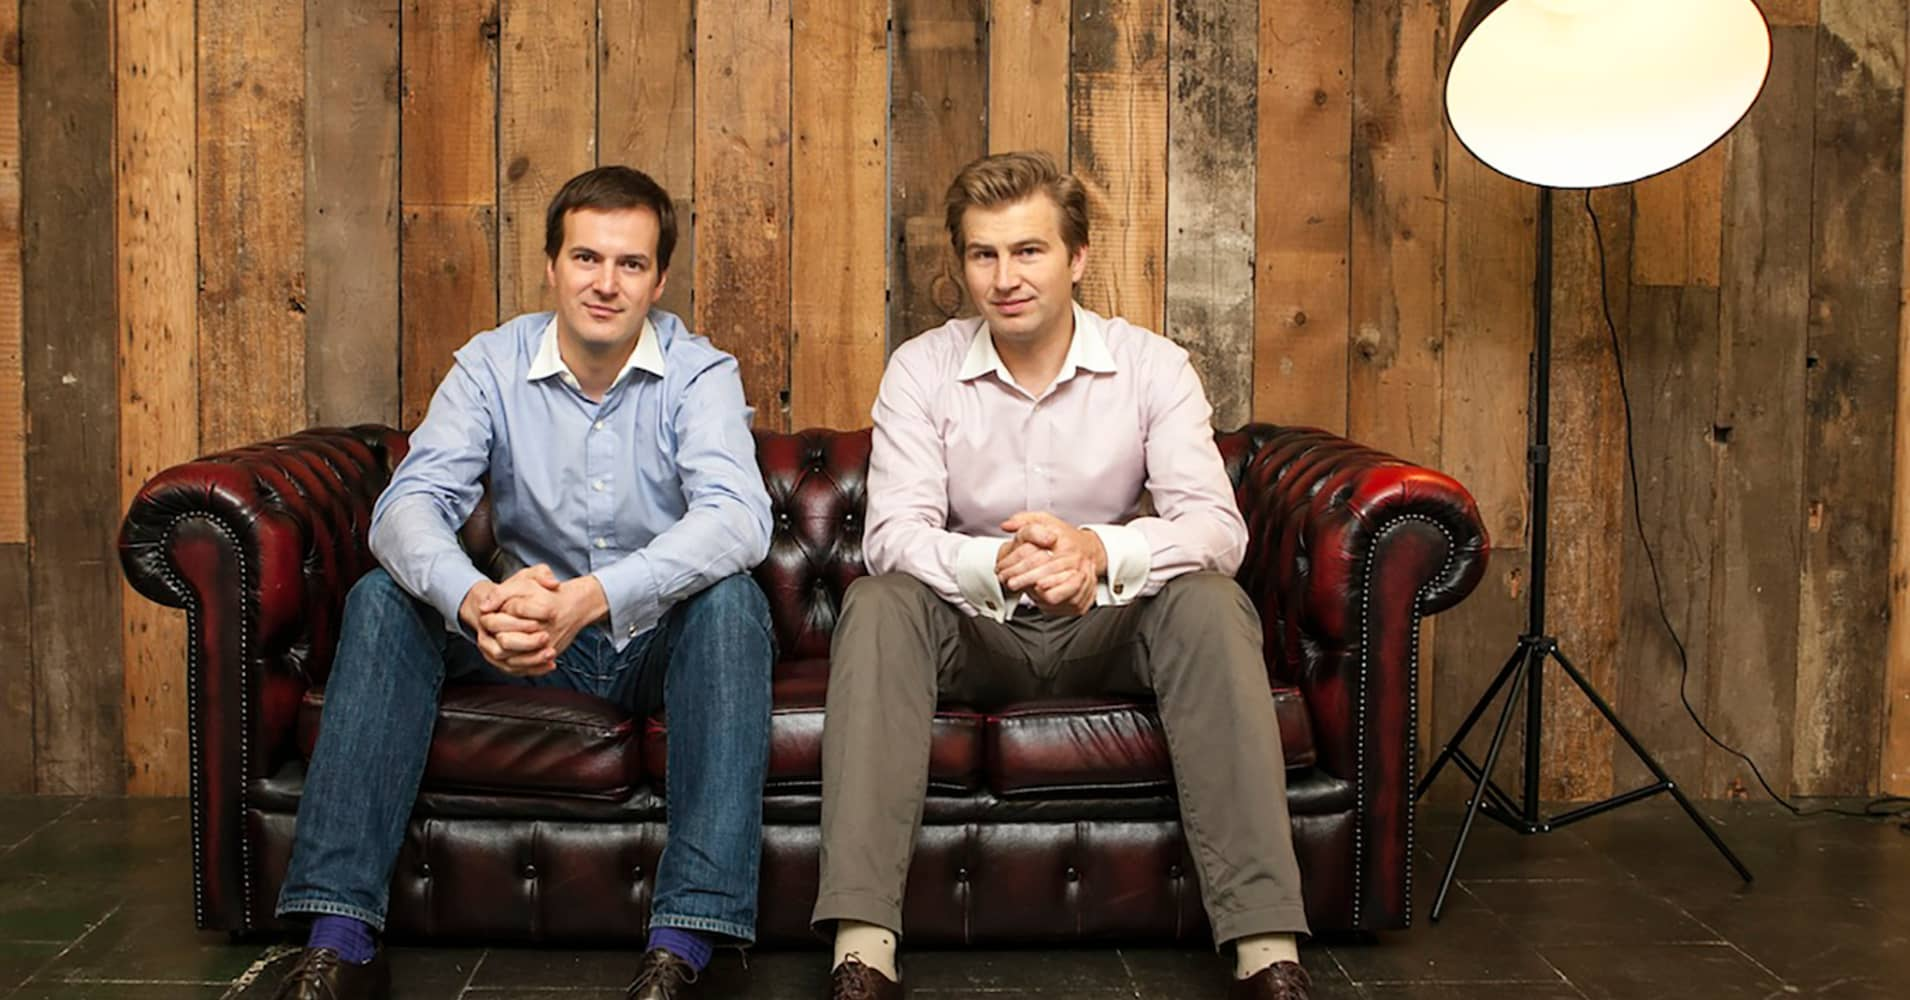 Fintech unicorn TransferWise strikes first deal with a major bank to offer cheap currency transfers